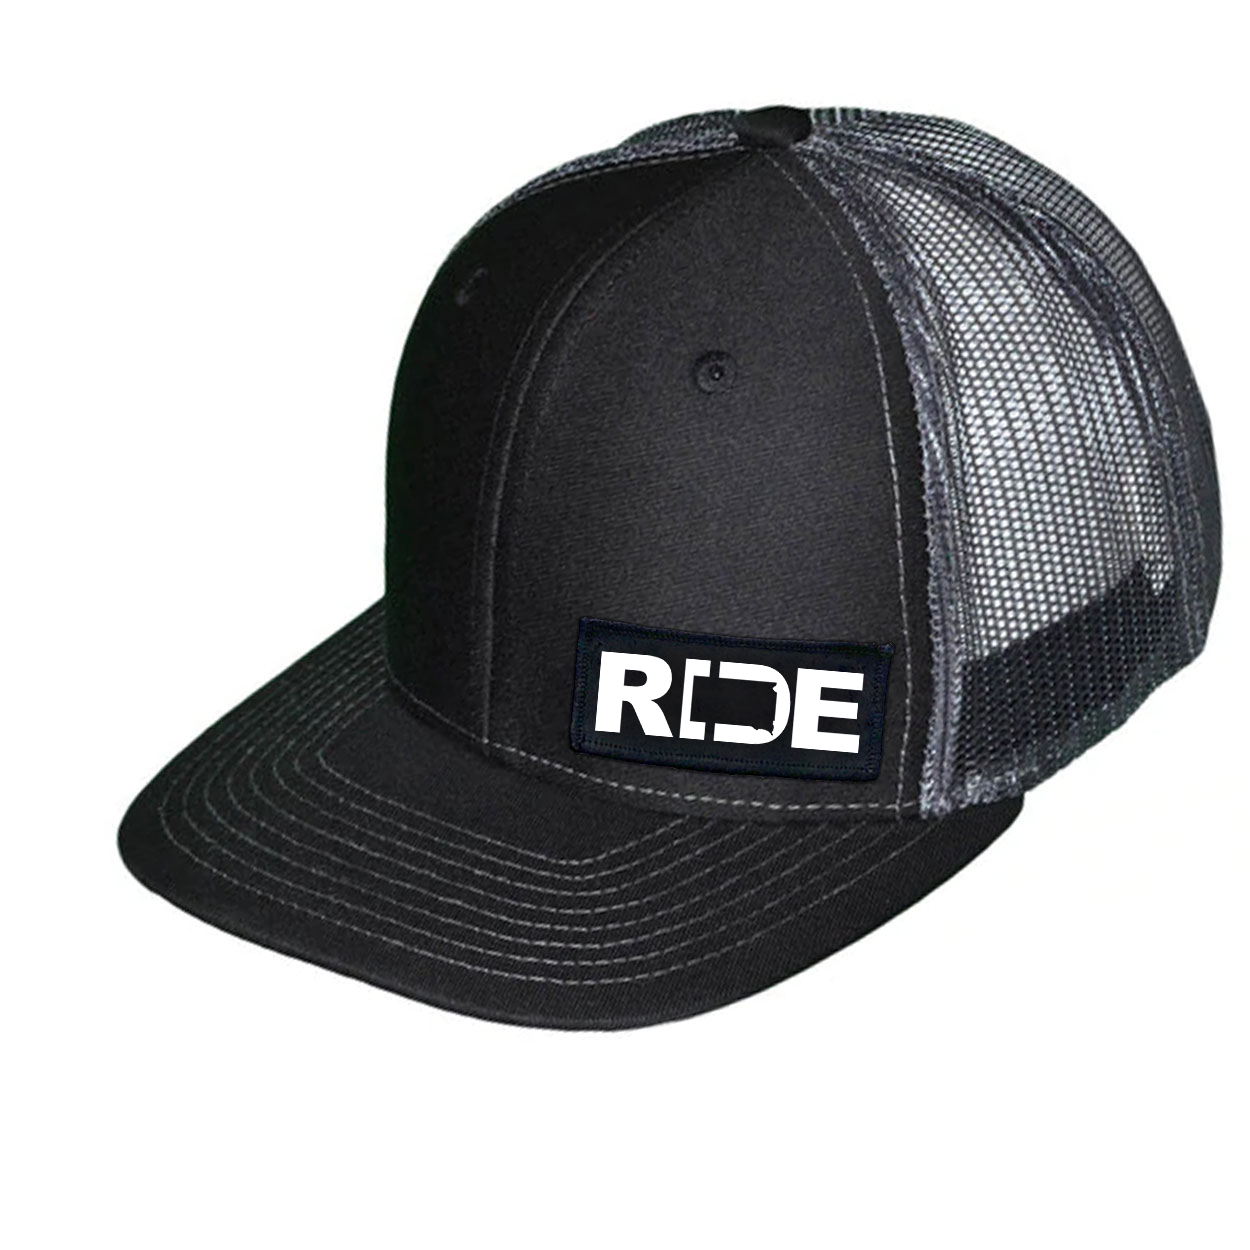 Ride South Dakota Night Out Woven Patch Snapback Trucker Hat Black/Dark Gray (White Logo)